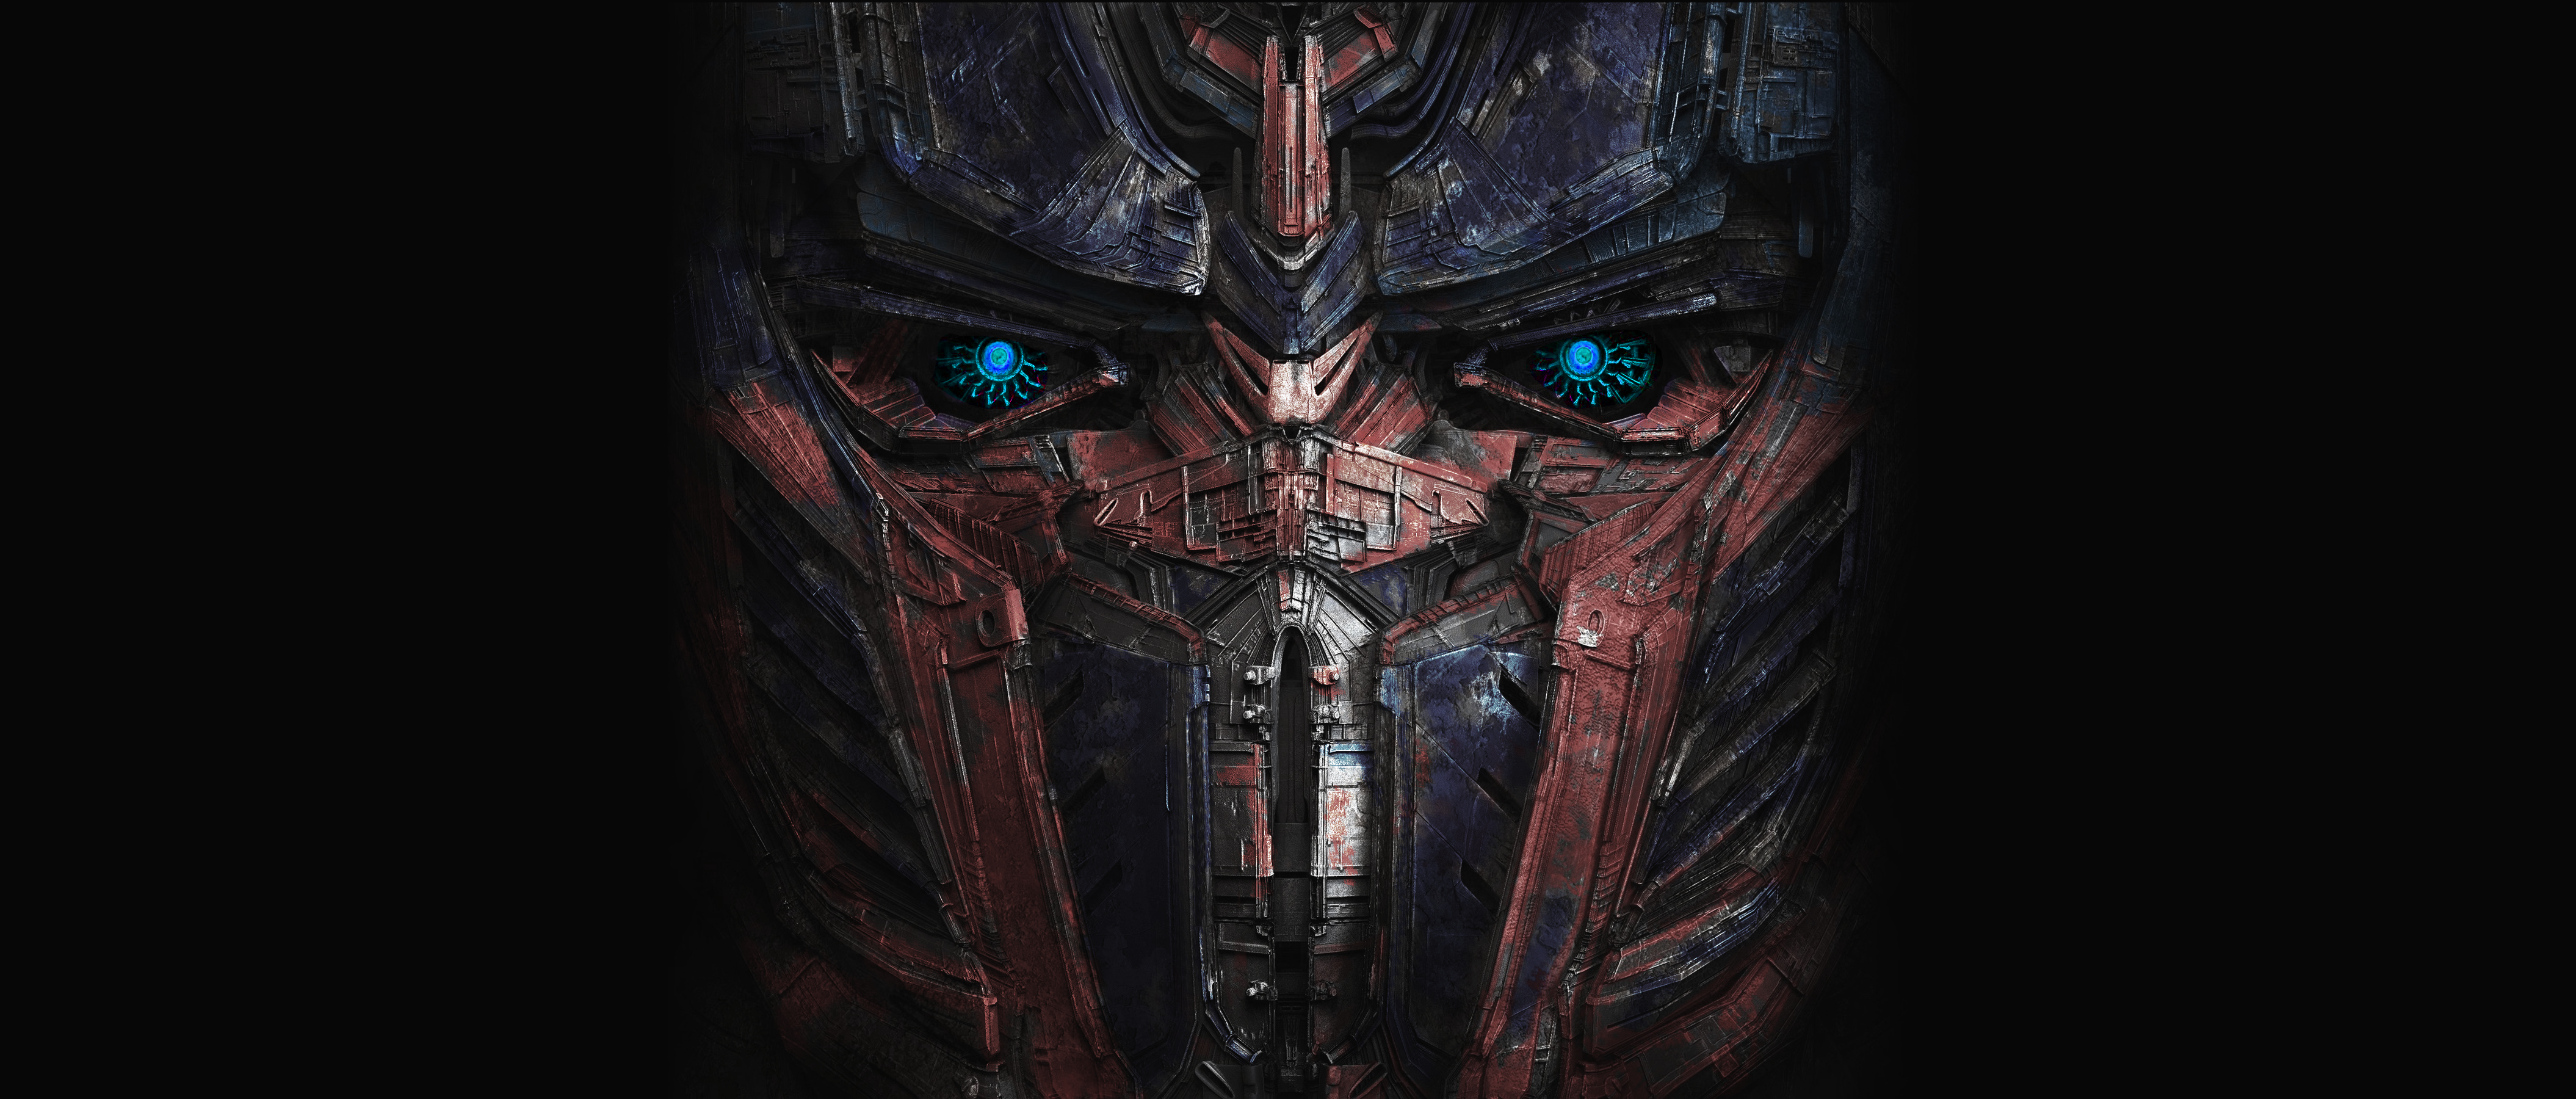 optimus prime's face full hd wallpaper and background image